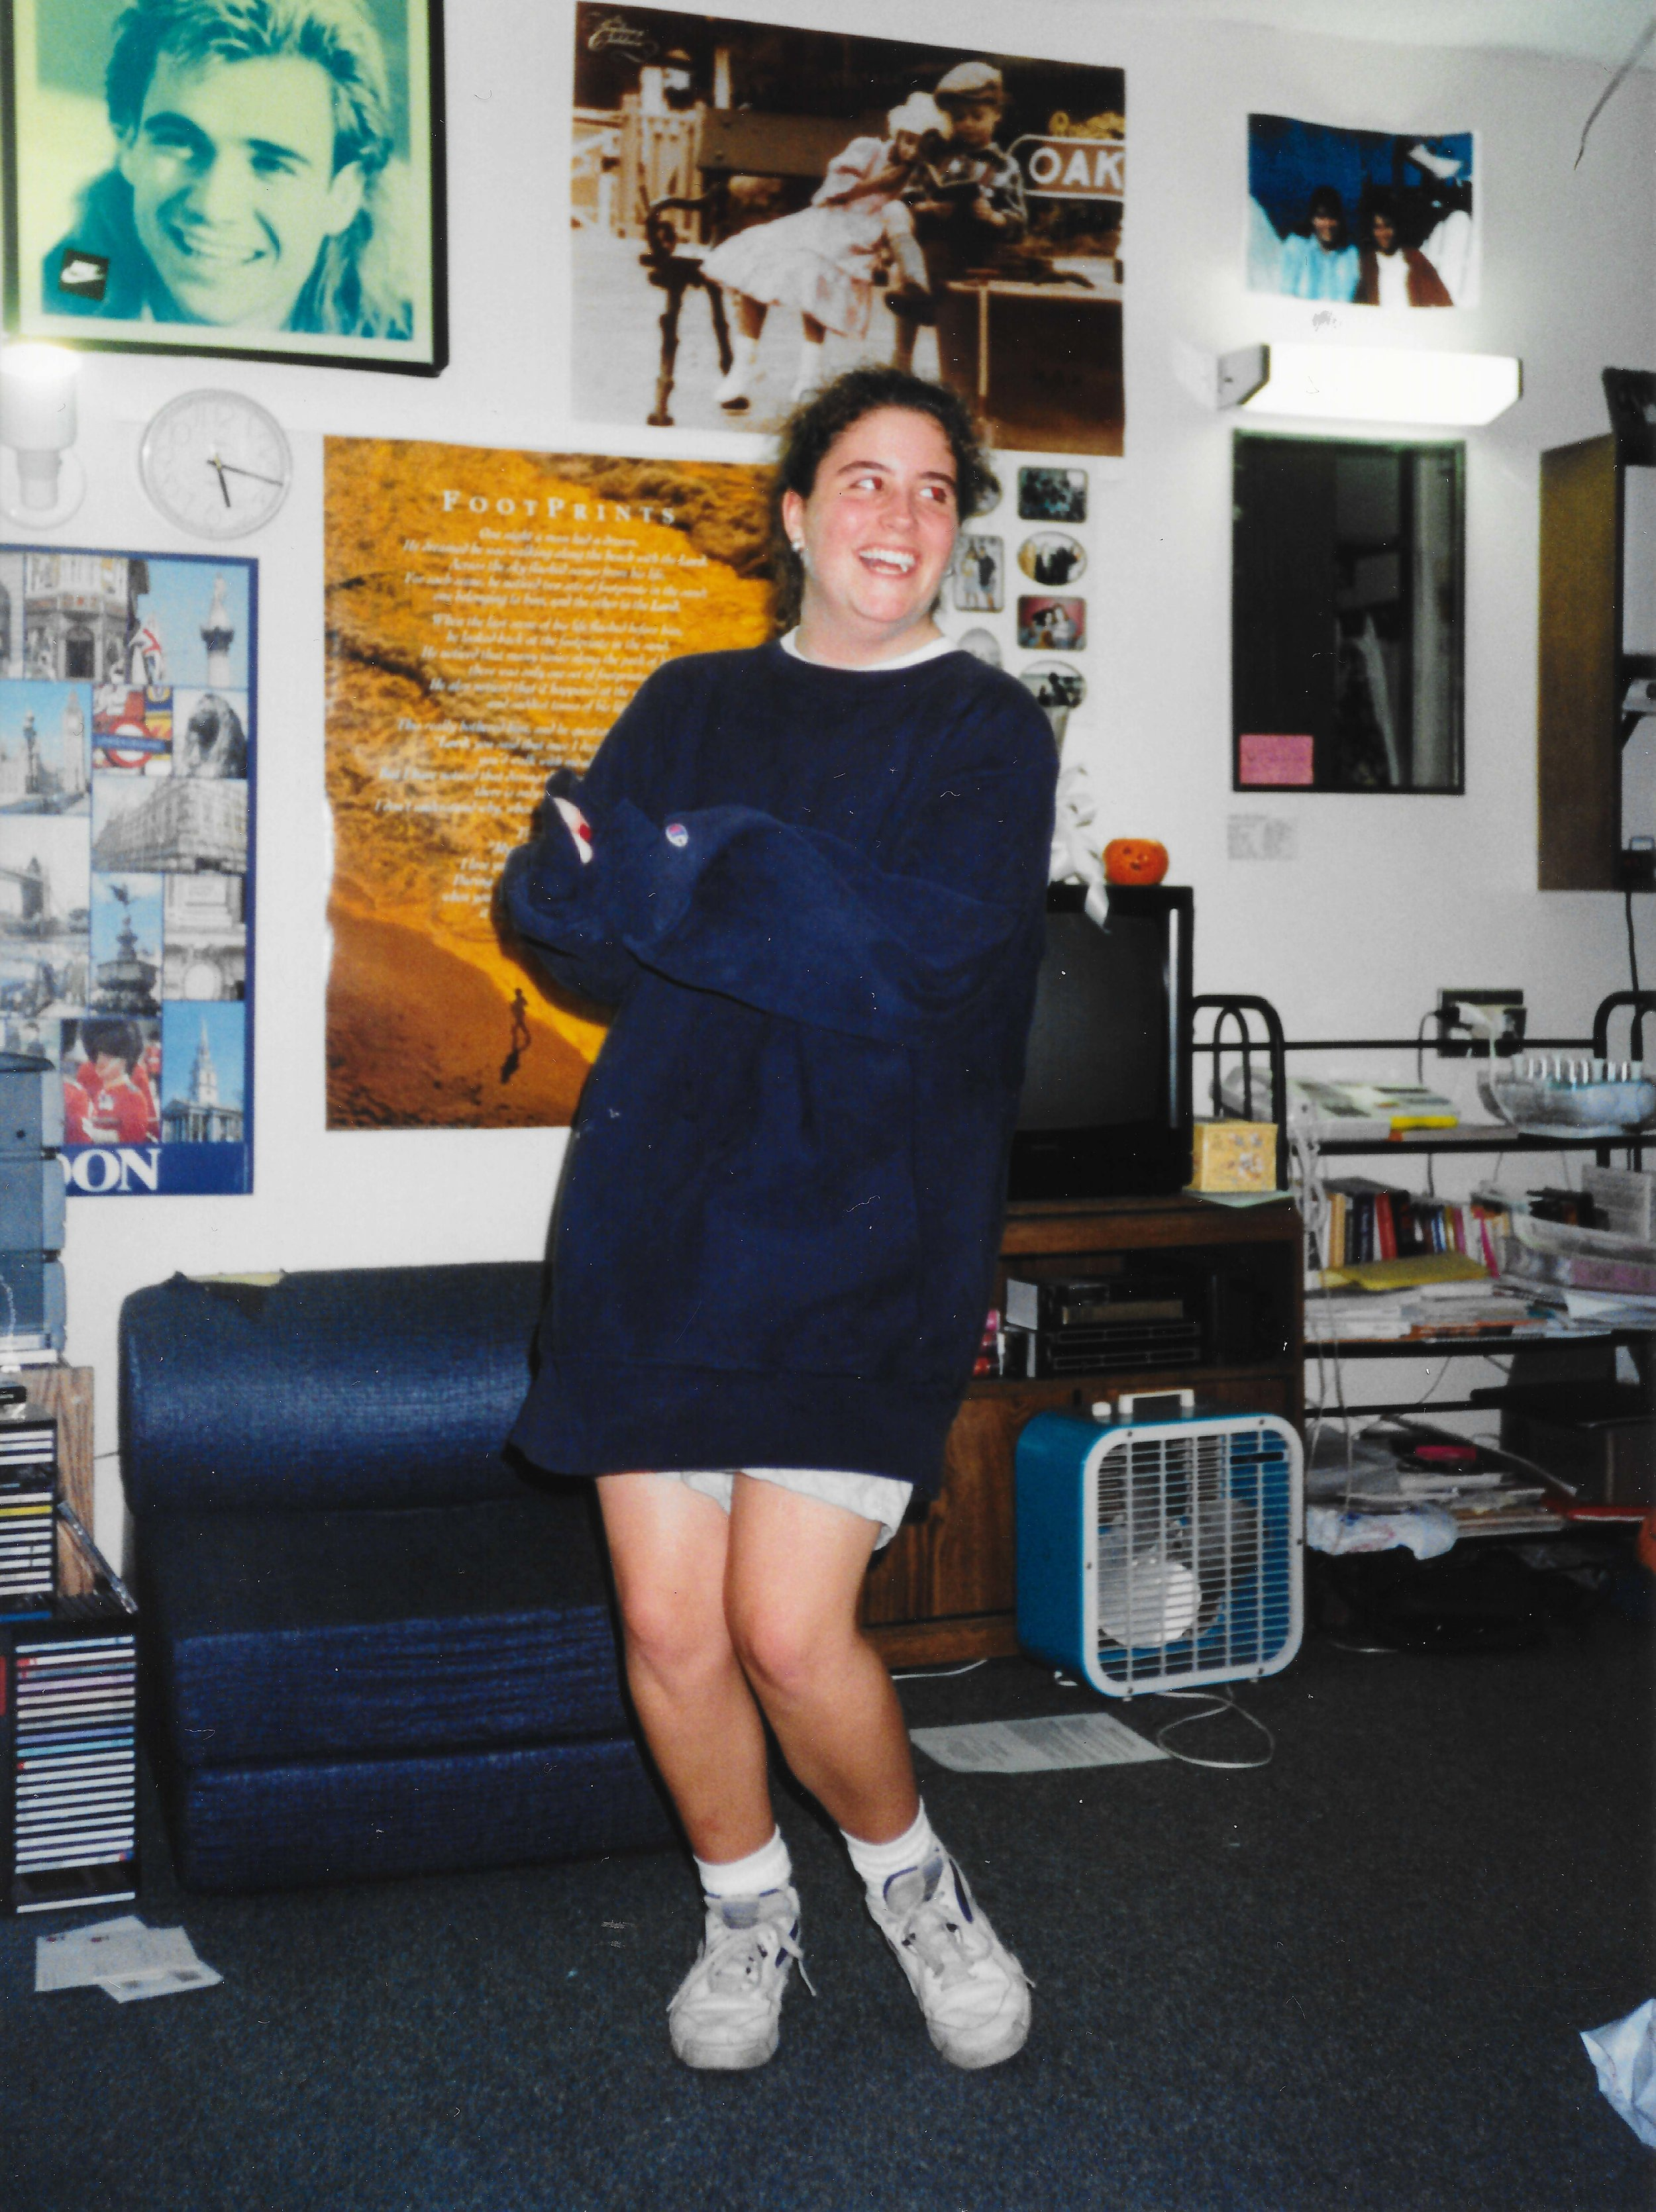 Rebecca dancing back at the dorm room after winning a volleyball game … and in her over sized sweat shirt.